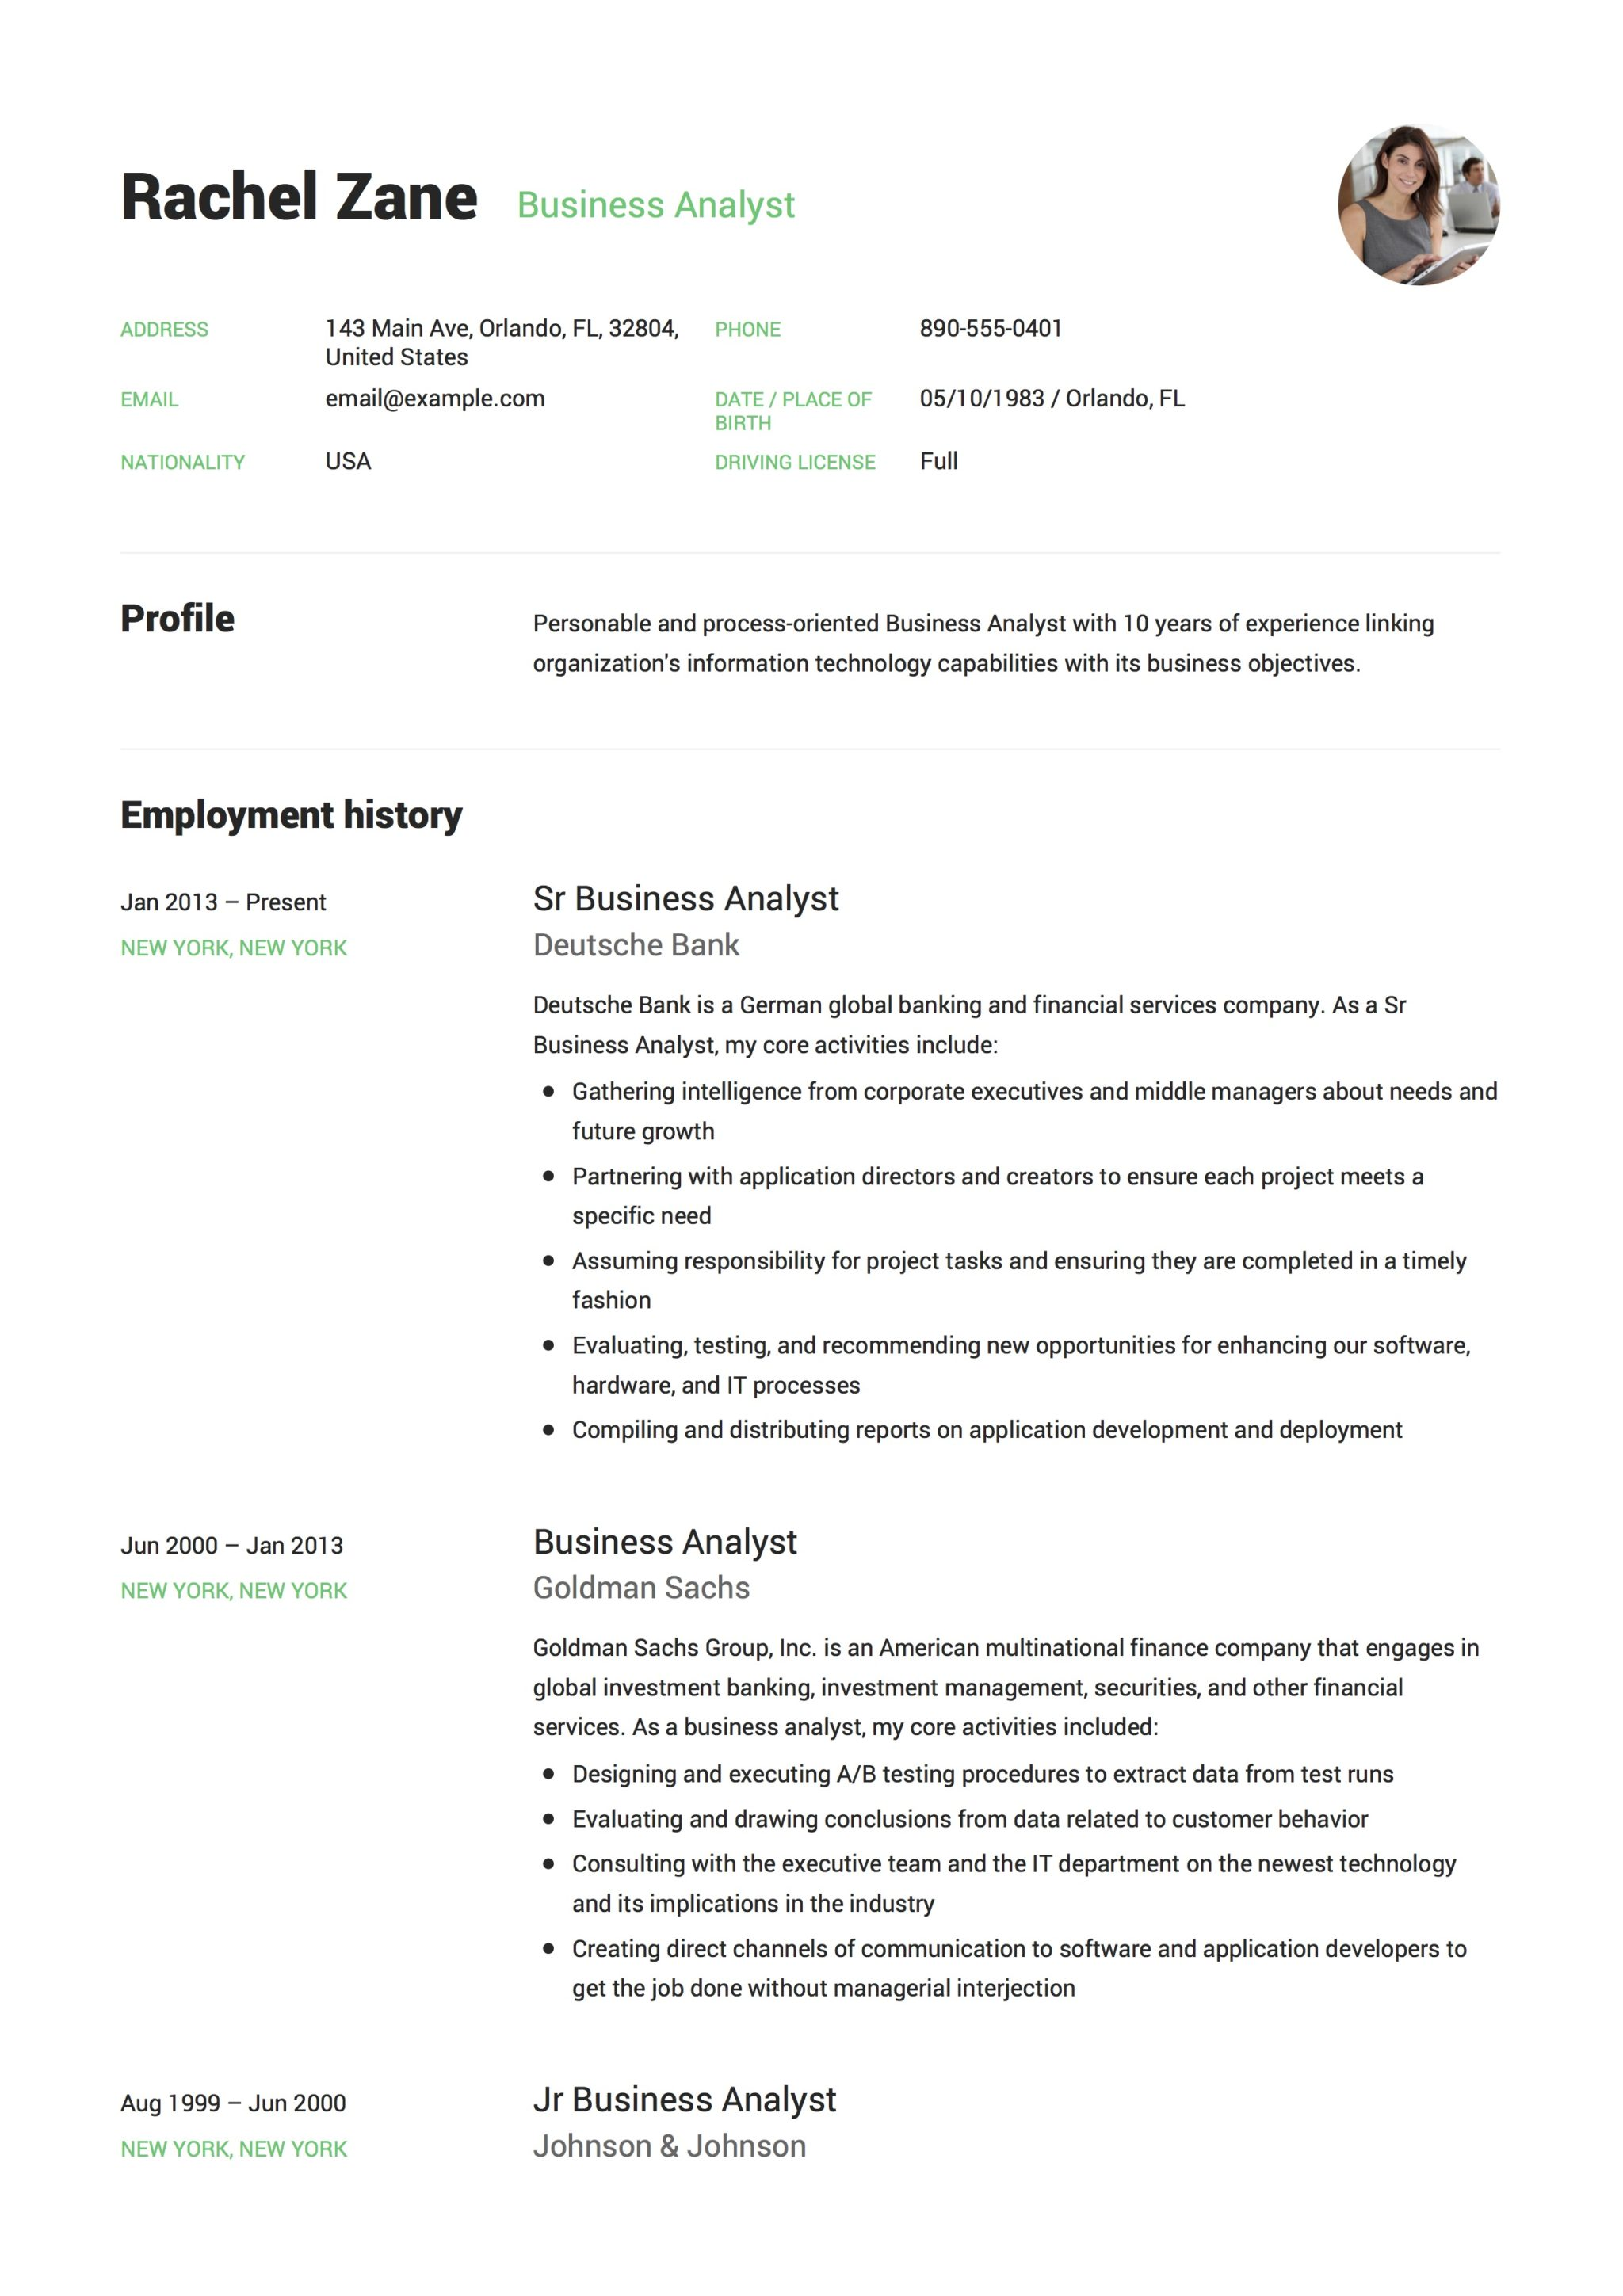 12 business analyst resume samples 2018 free downloads rachel zane resume template business analyst maxwellsz